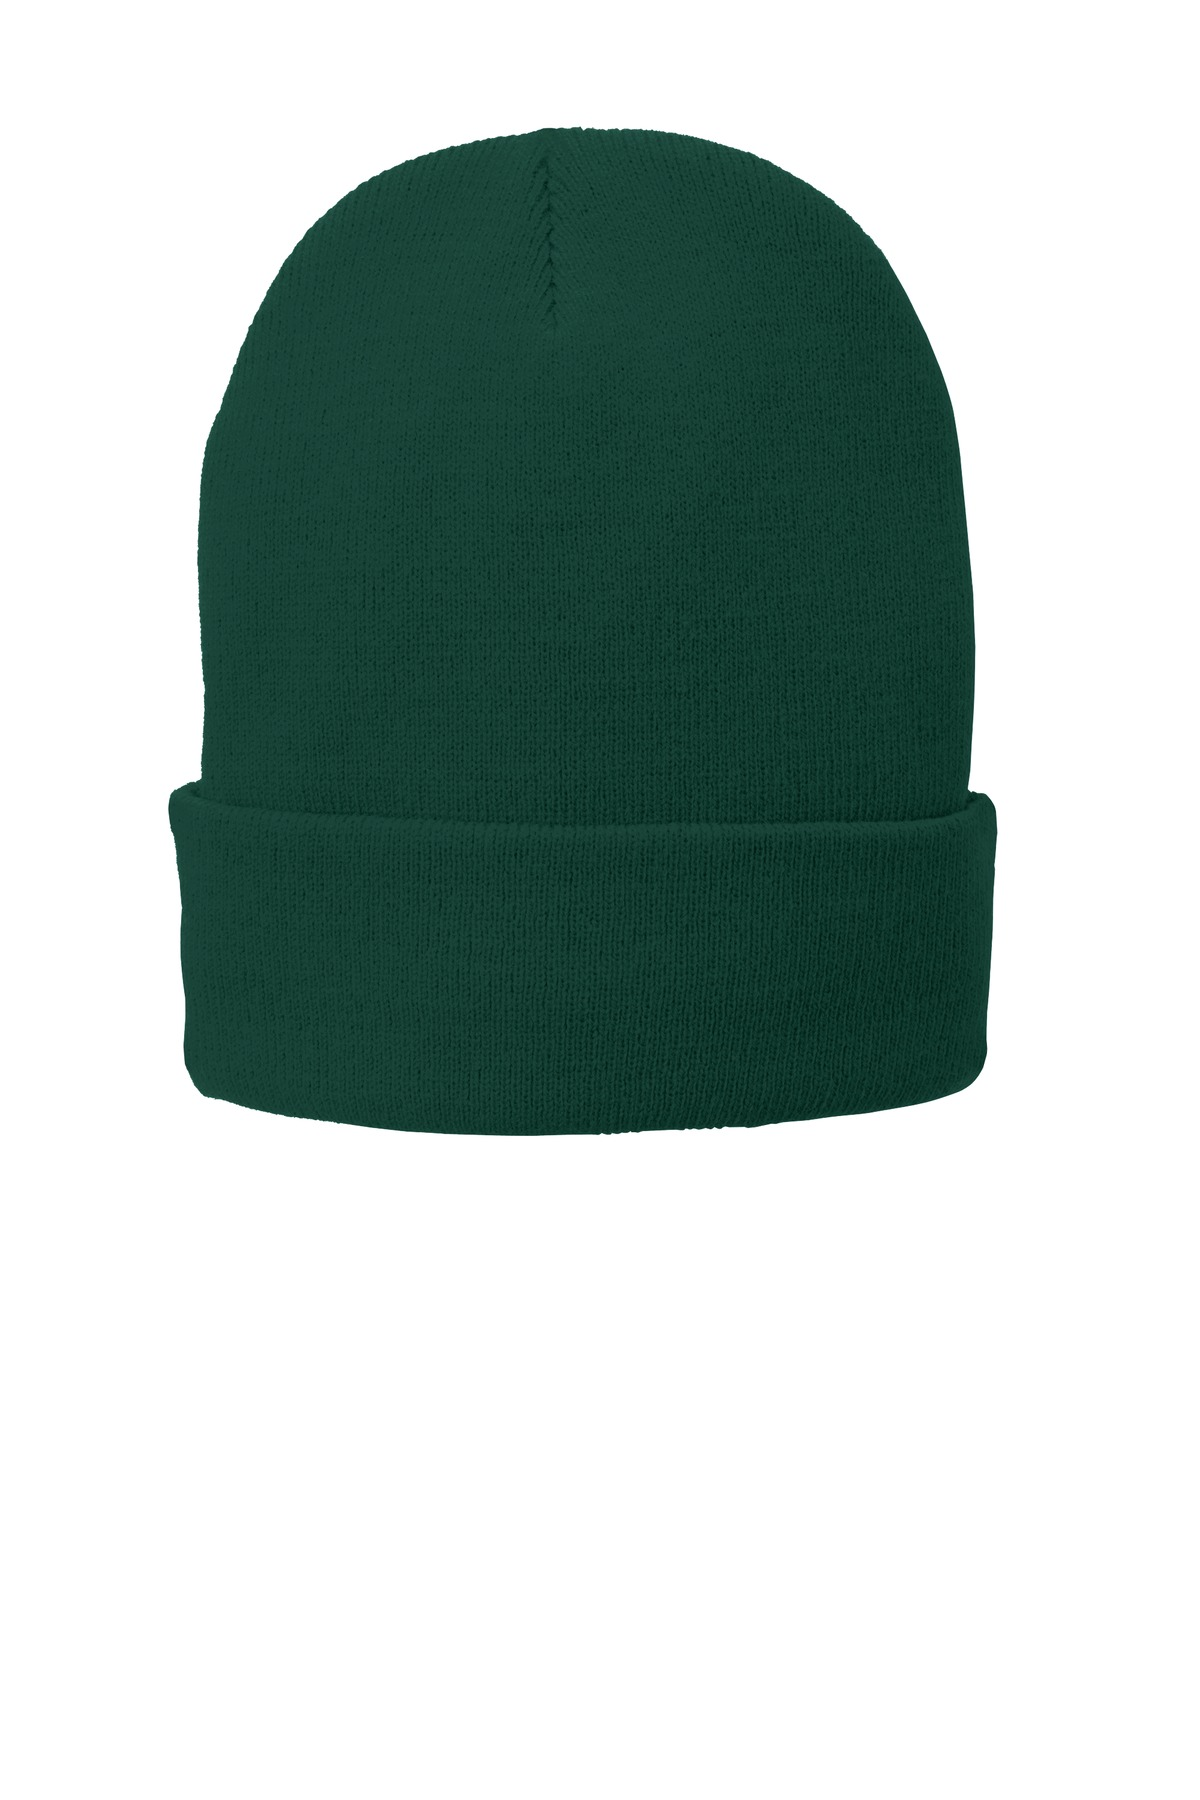 Port & Company  CP90L - Fleece-Lined Knit Cap